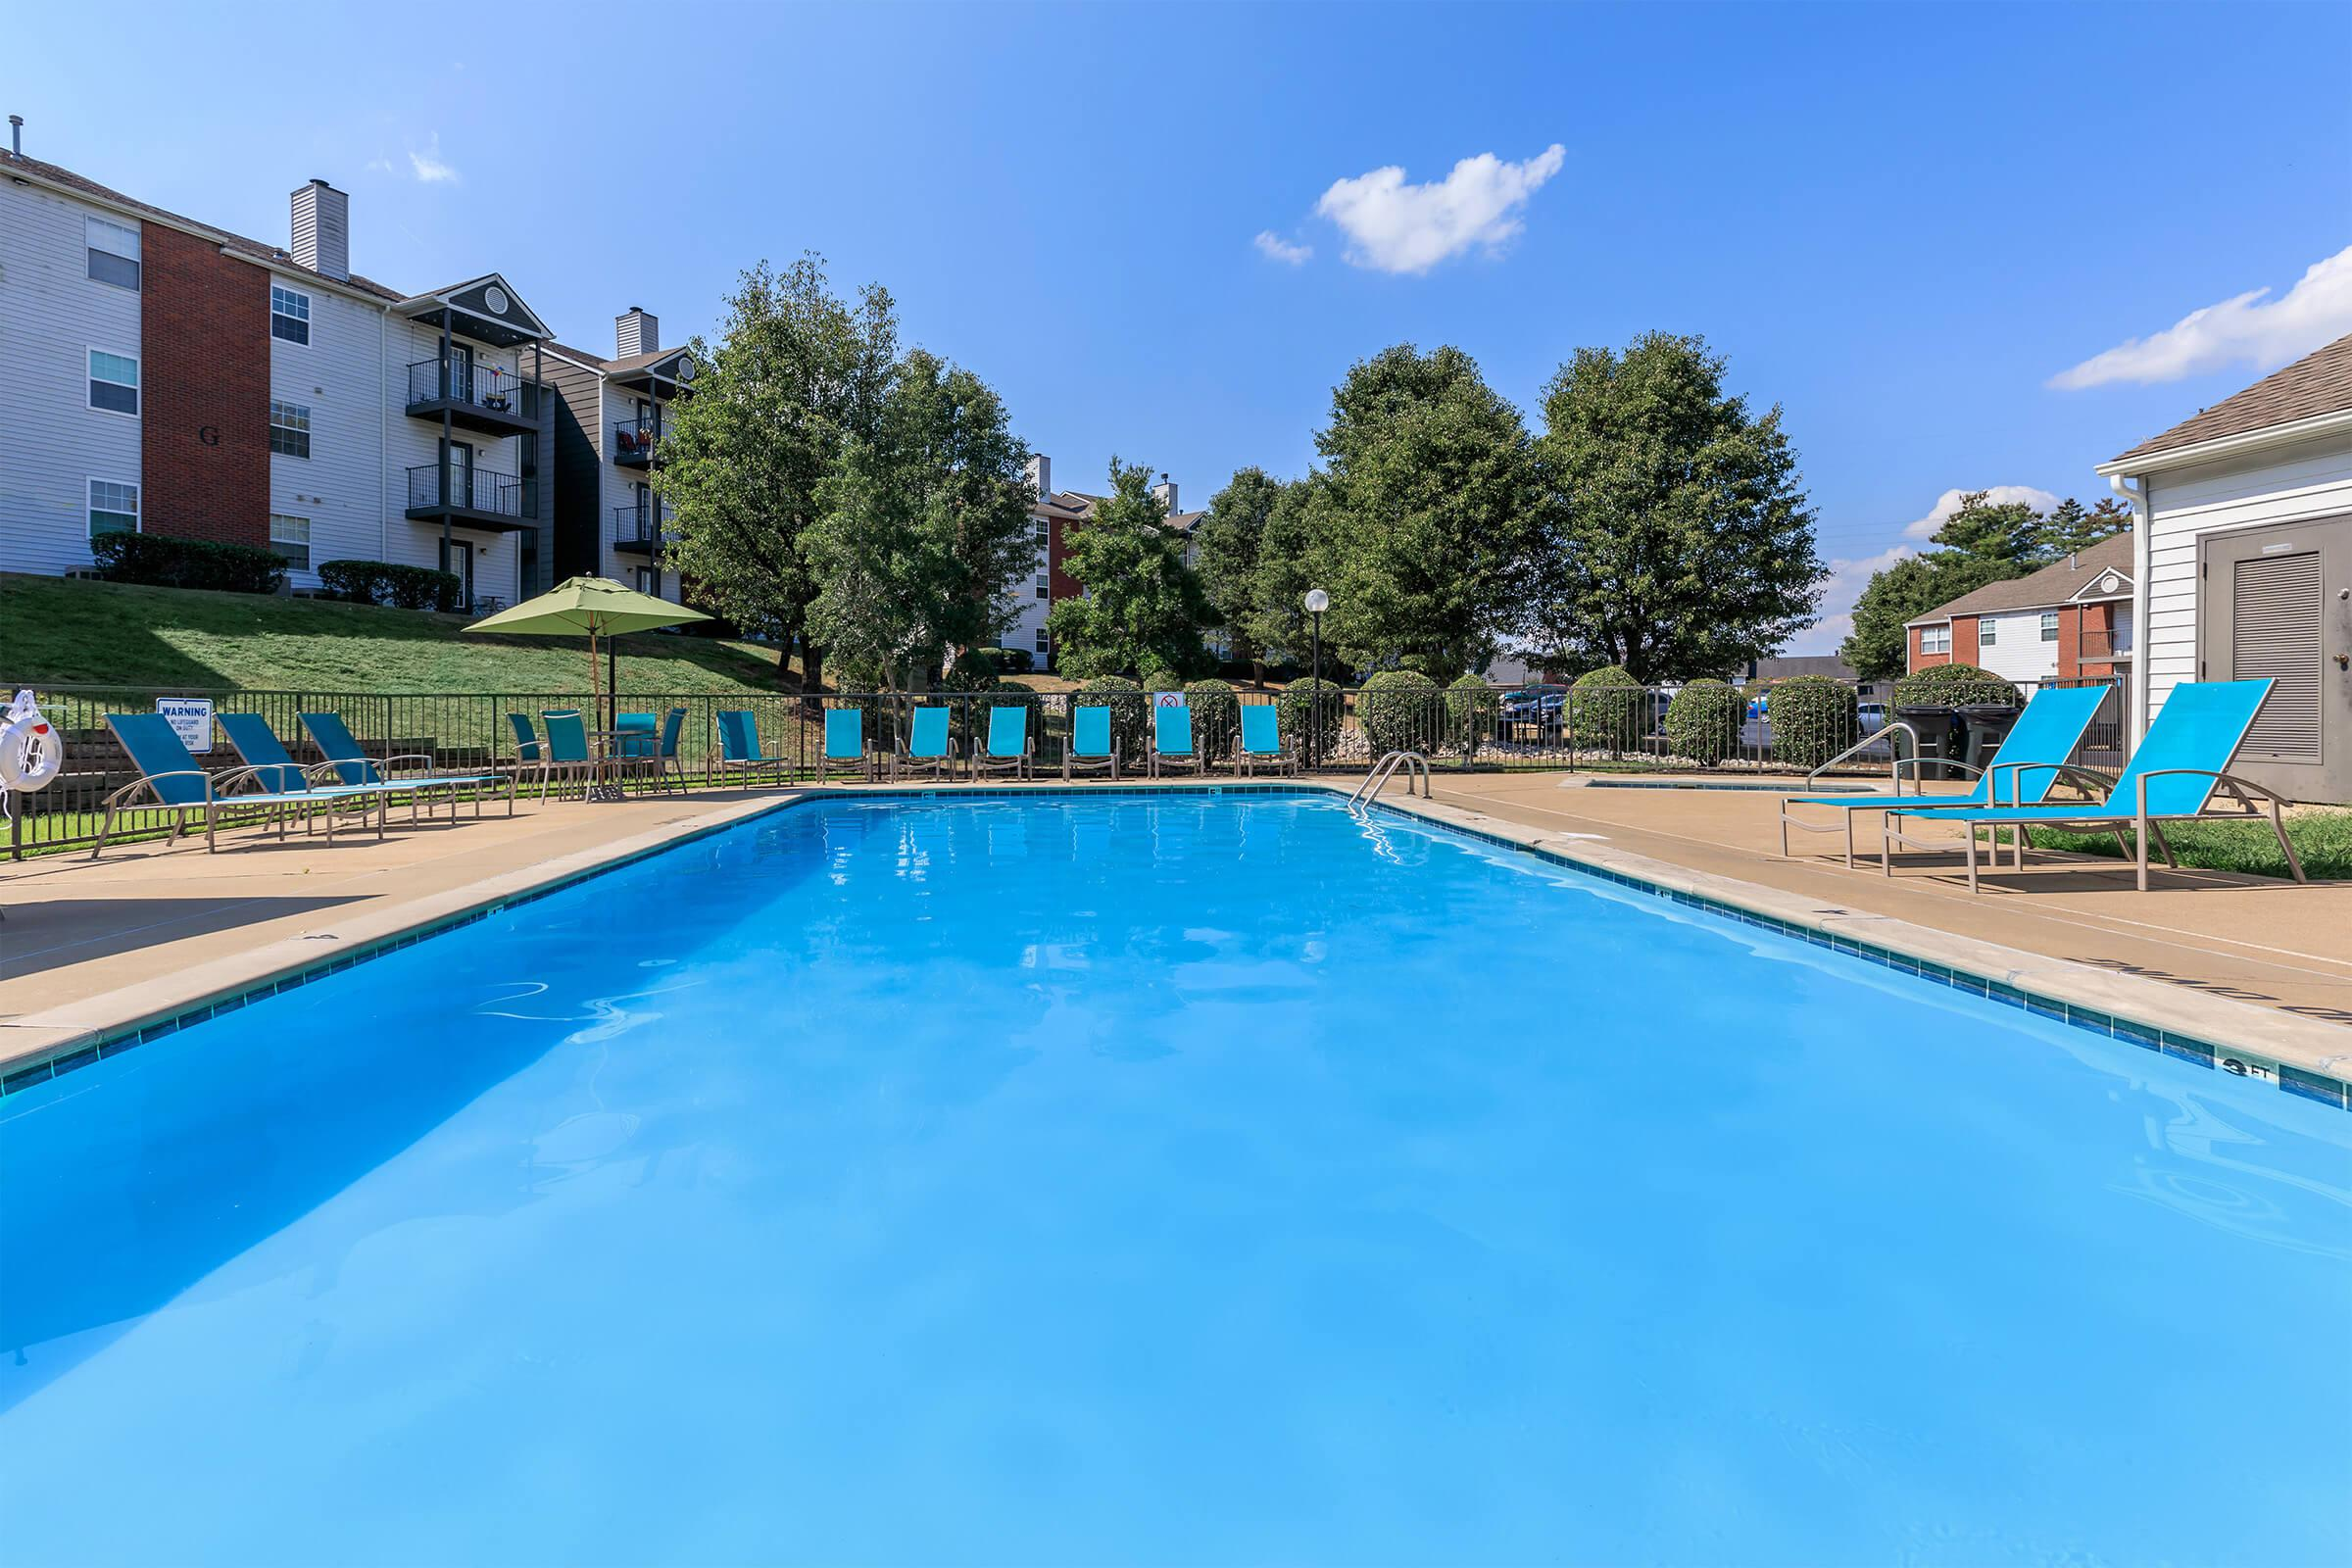 Kick back pool side here at Graymere in Columbia, Tennessee